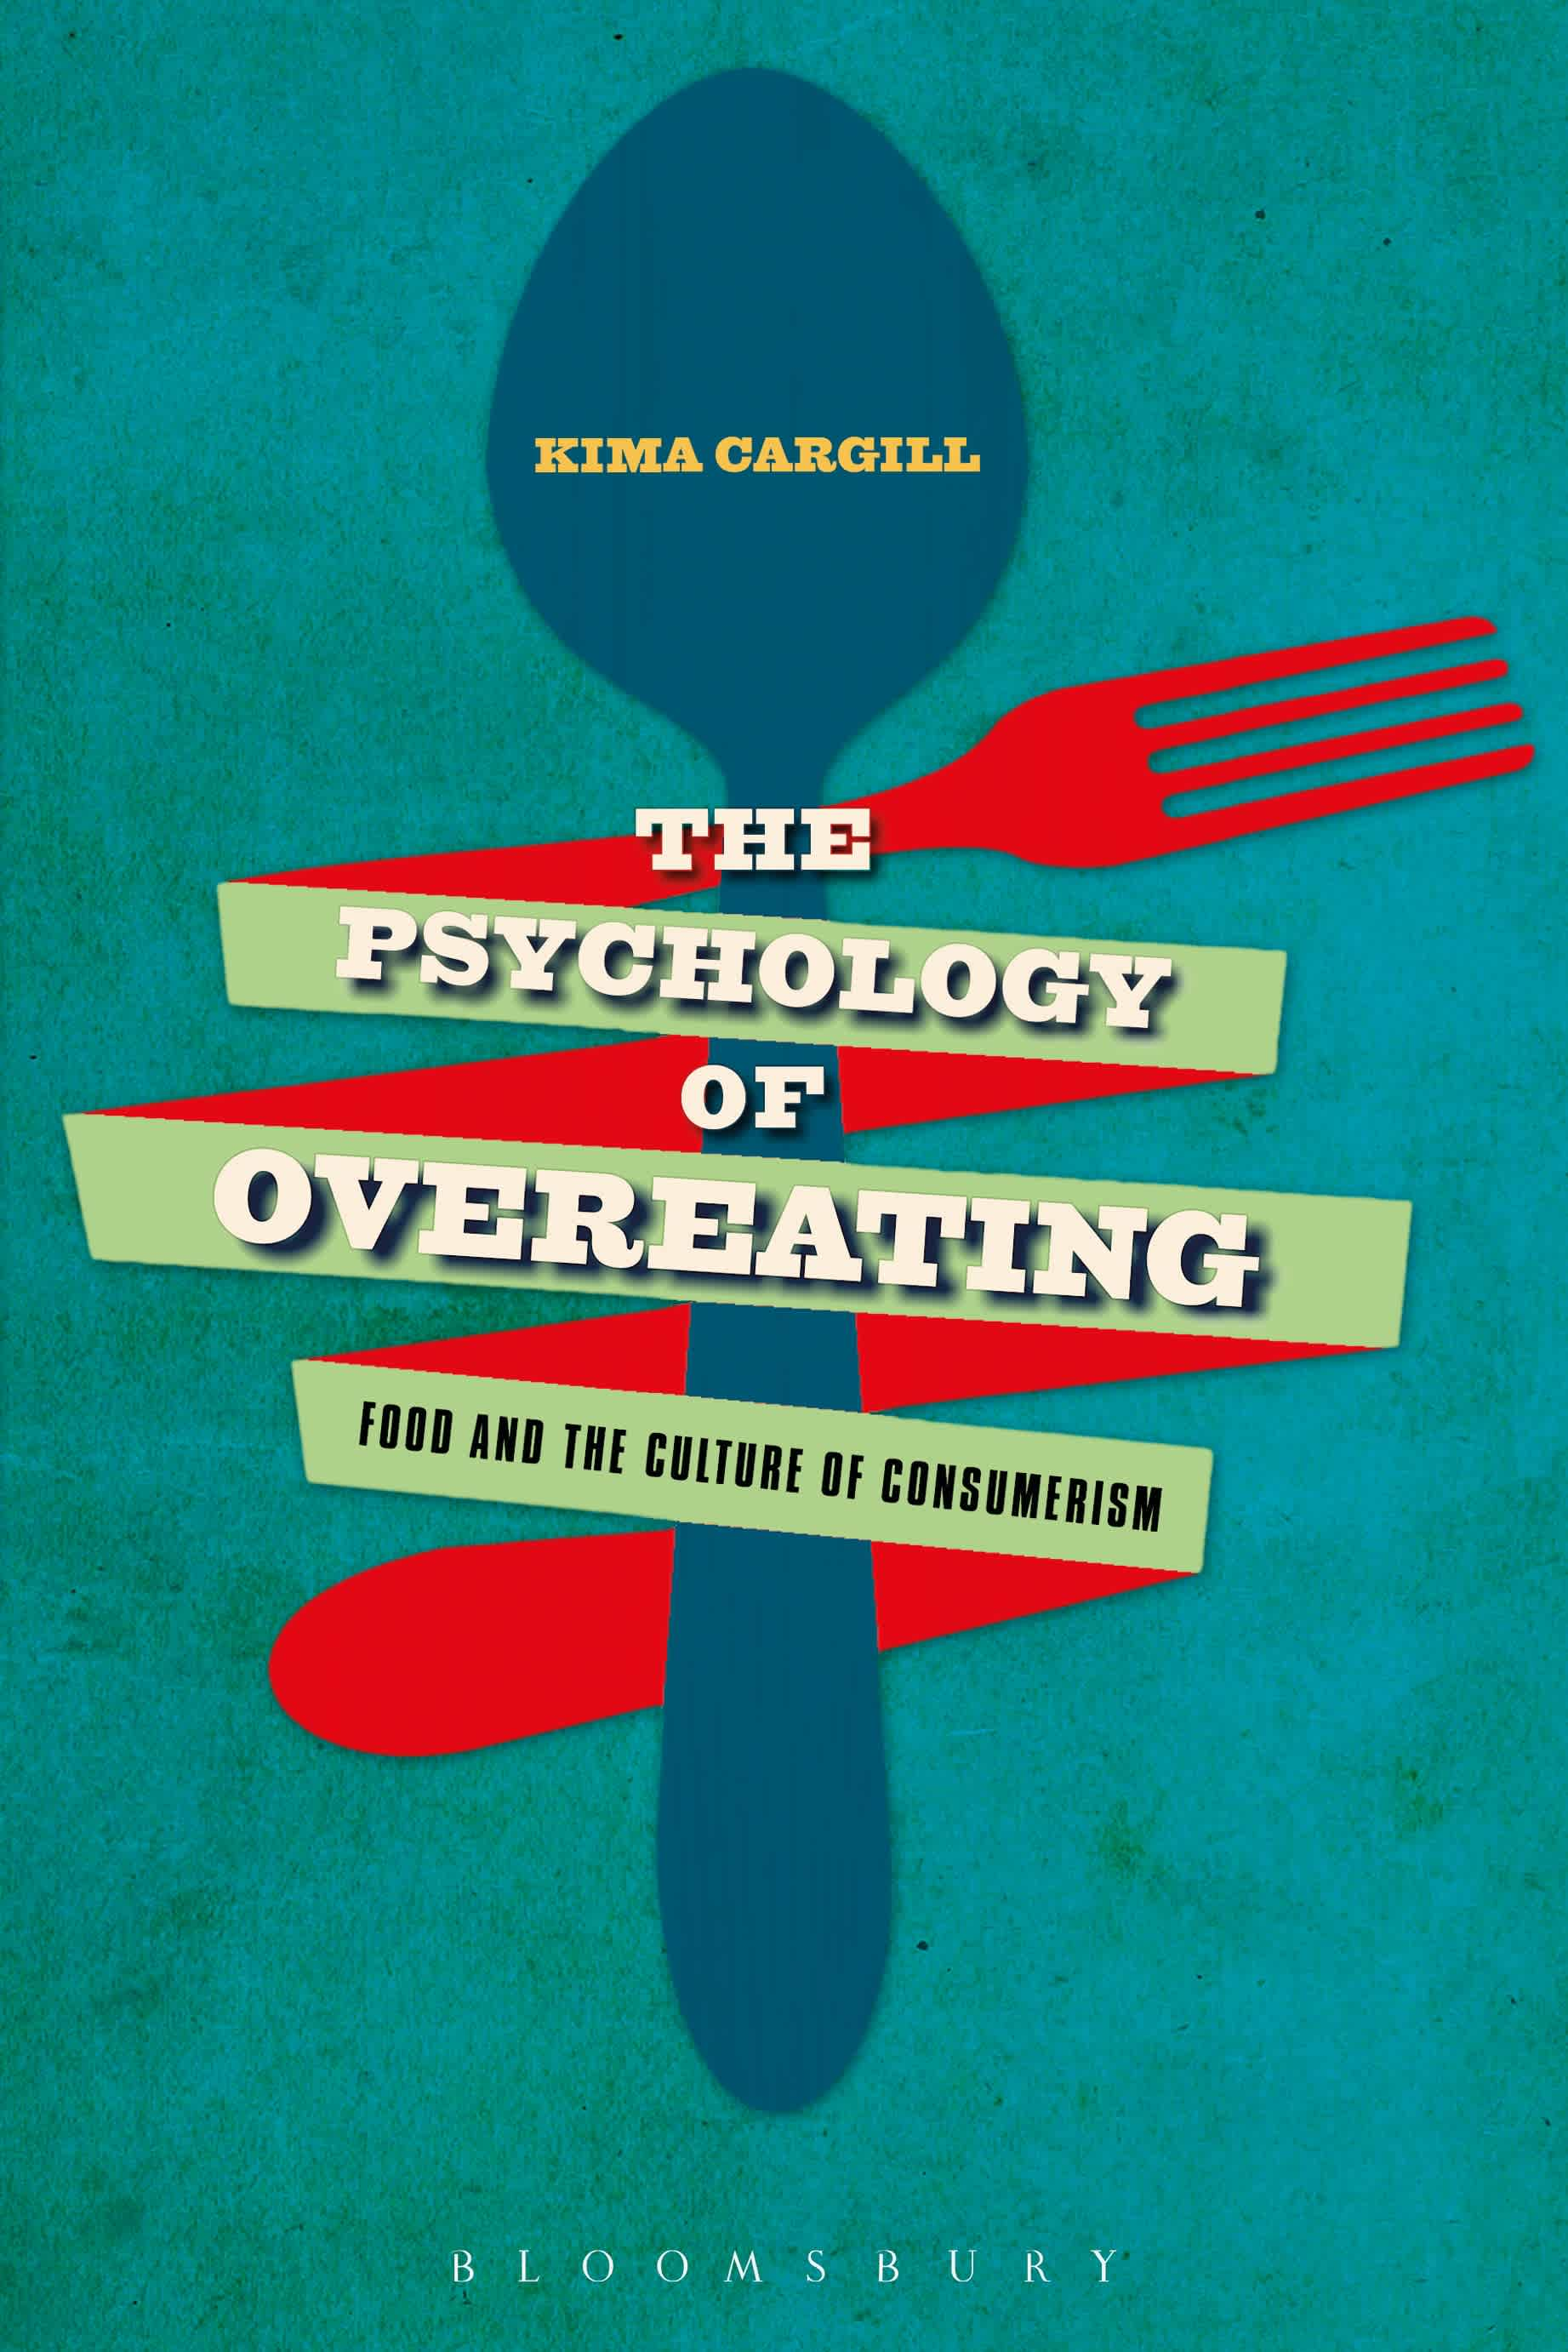 The Psychology of Overeating